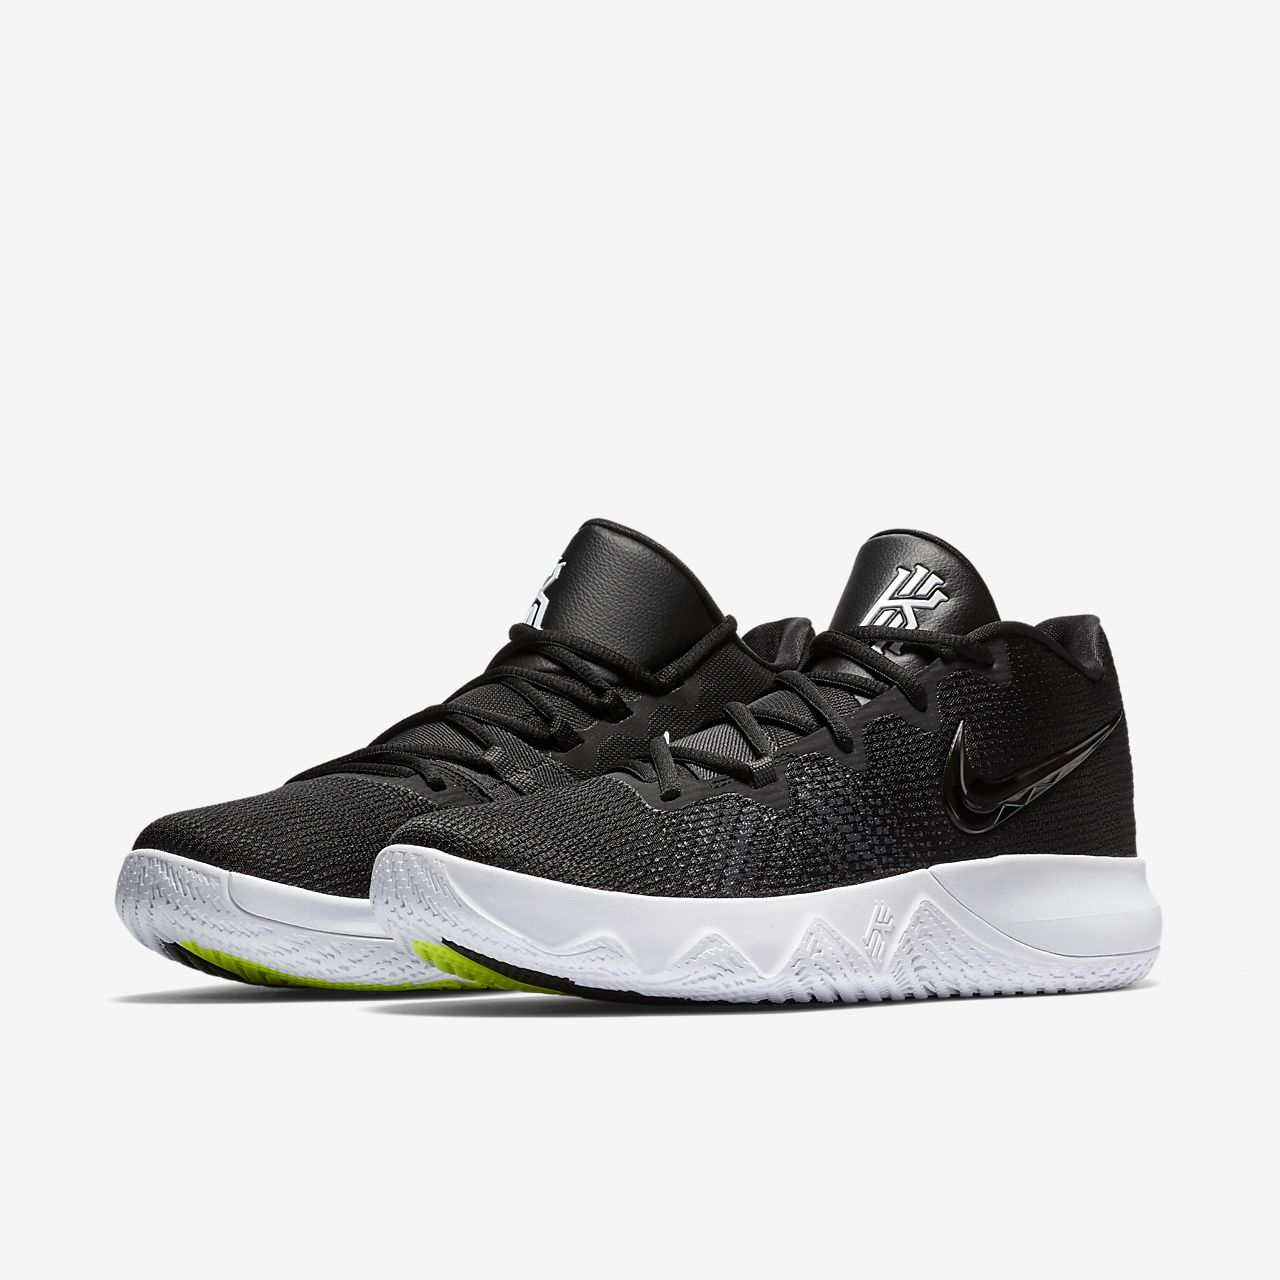 finest selection 4d01b cb825 ... Chaussure de basketball Kyrie Flytrap